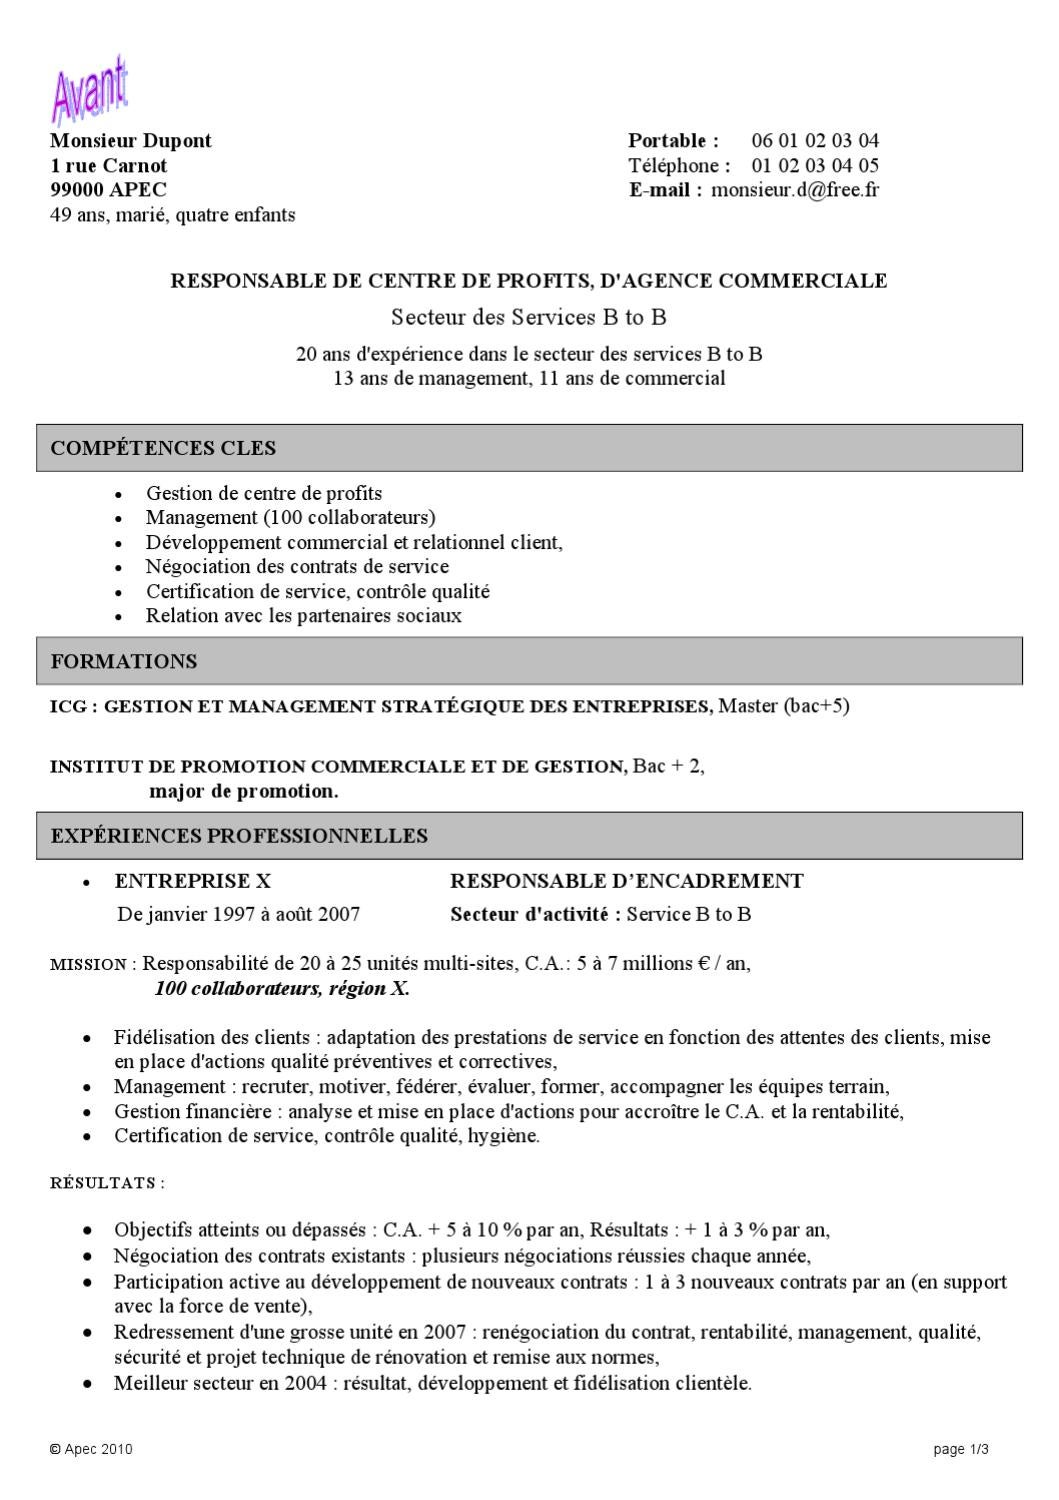 cv responsable de profit by apec